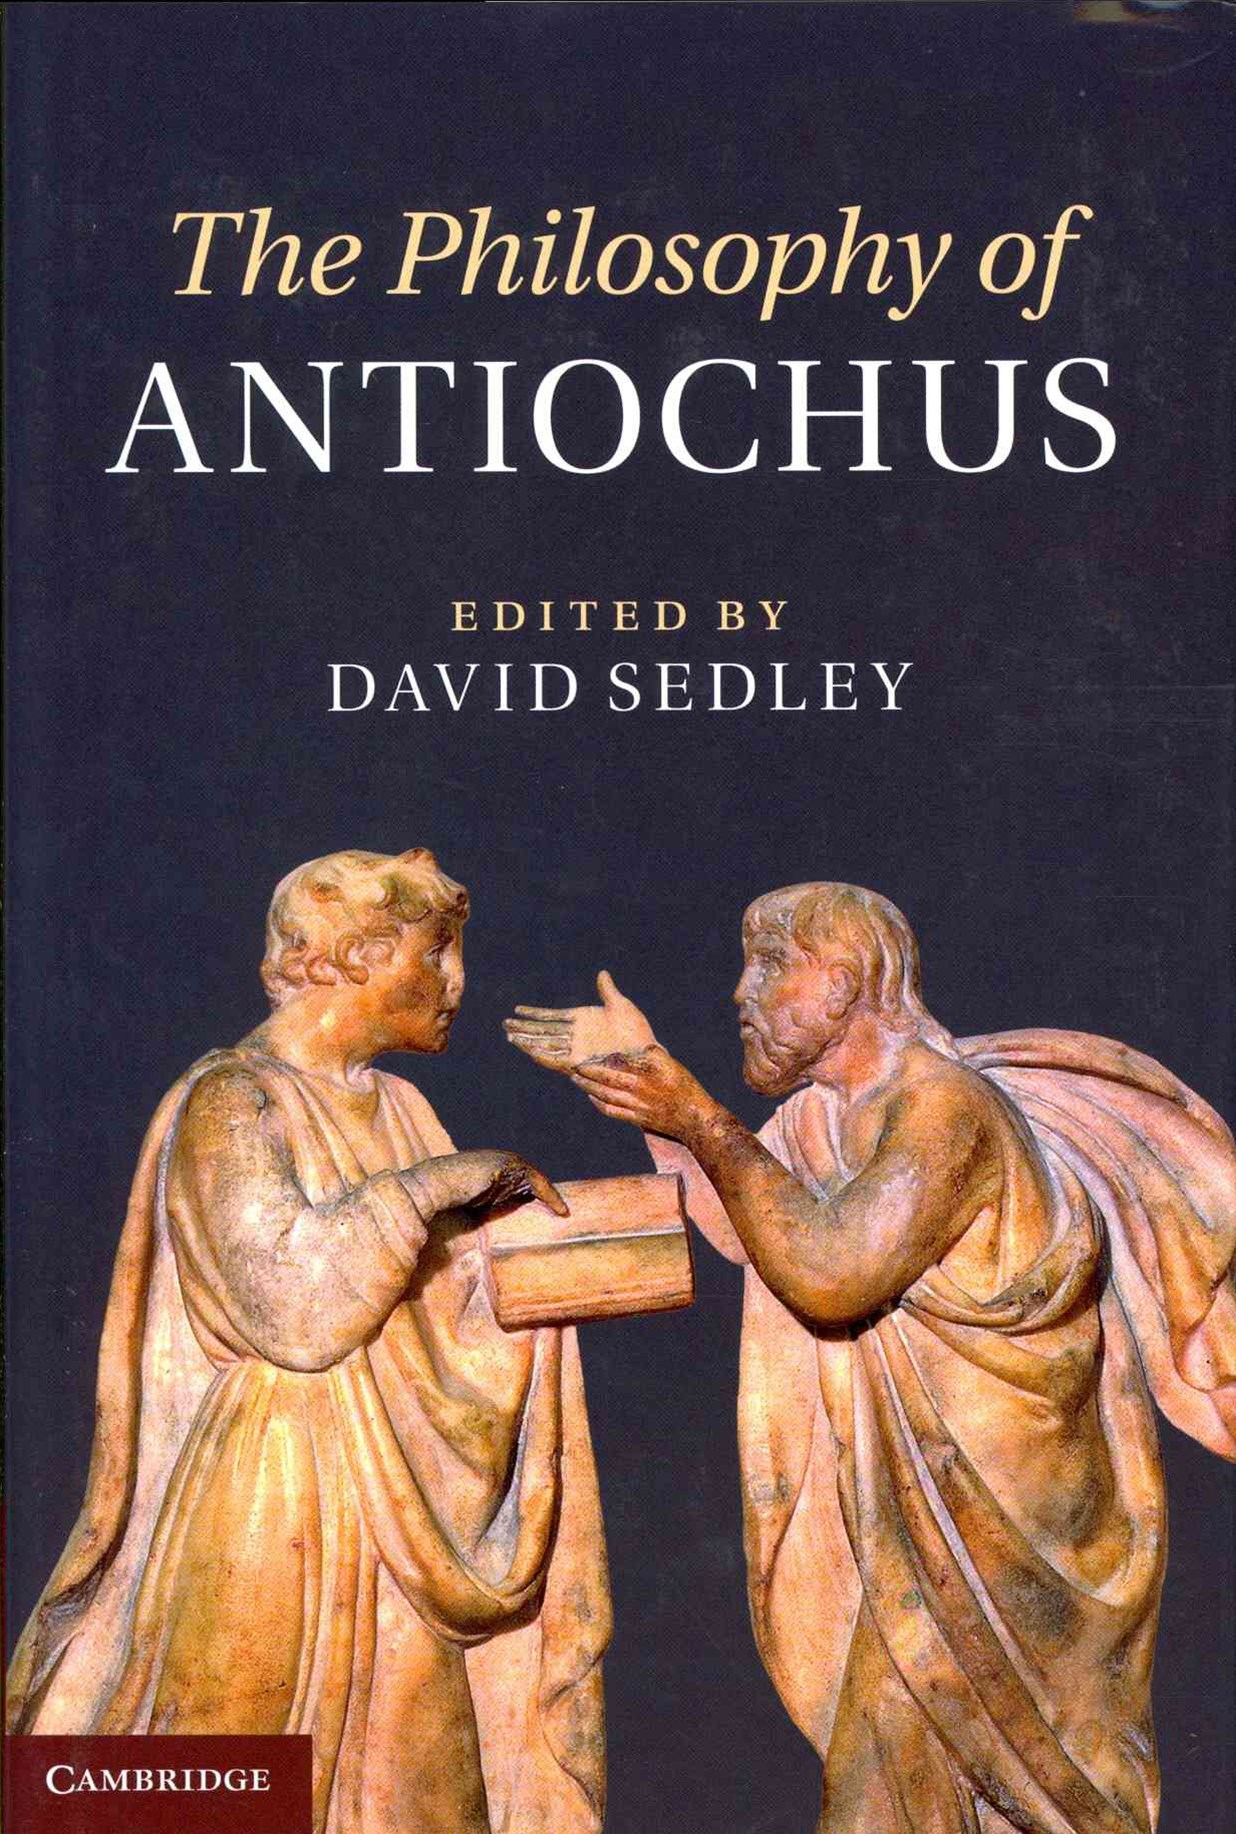 The Philosophy of Antiochus